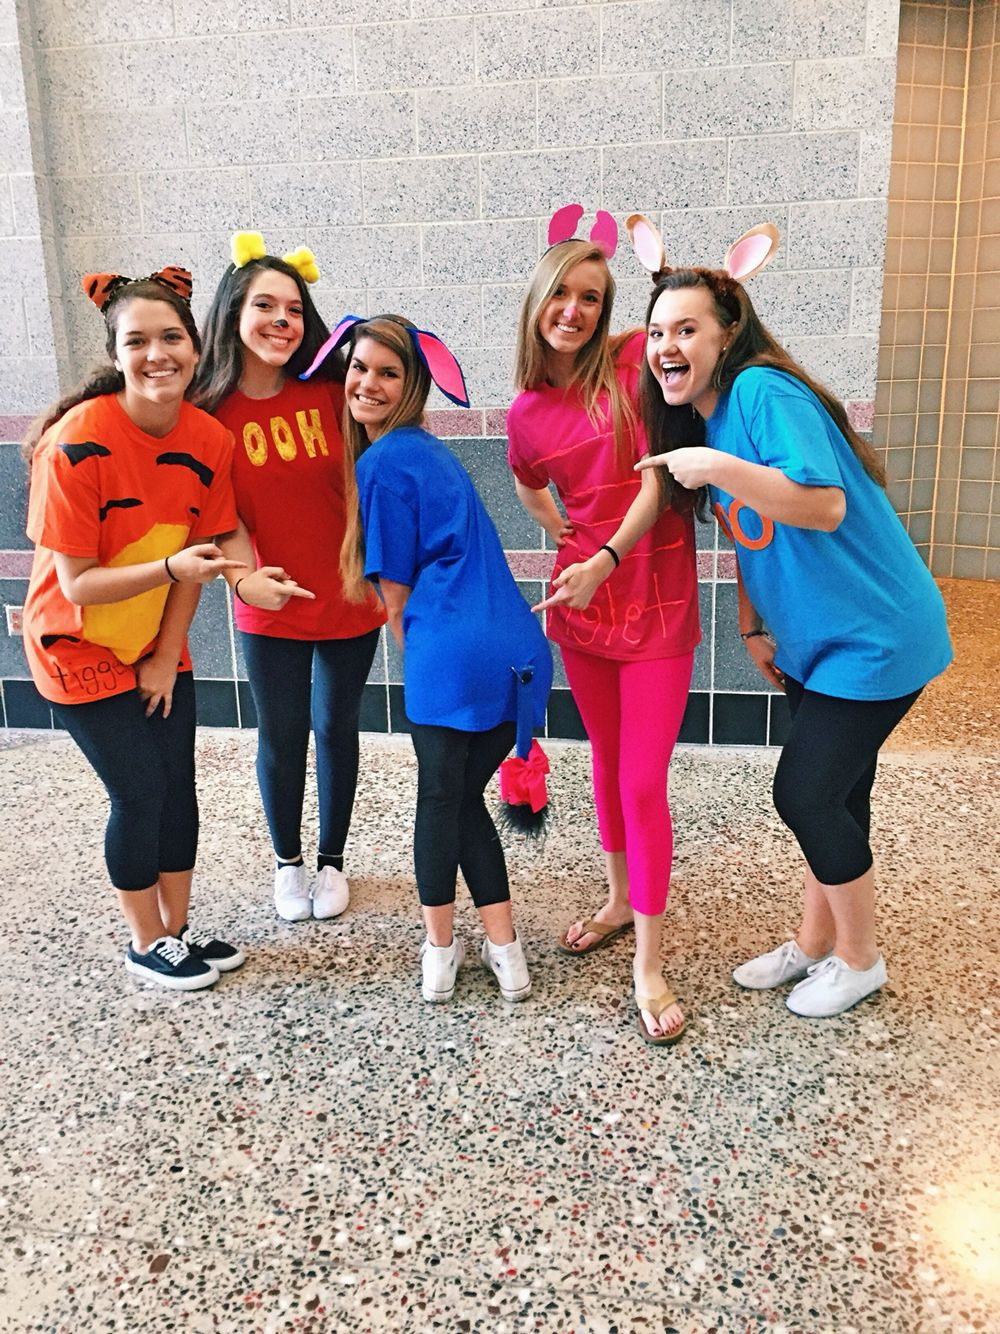 Best ideas about Eeyore Costume DIY . Save or Pin Winnie the Pooh character costumes Spirit week Now.